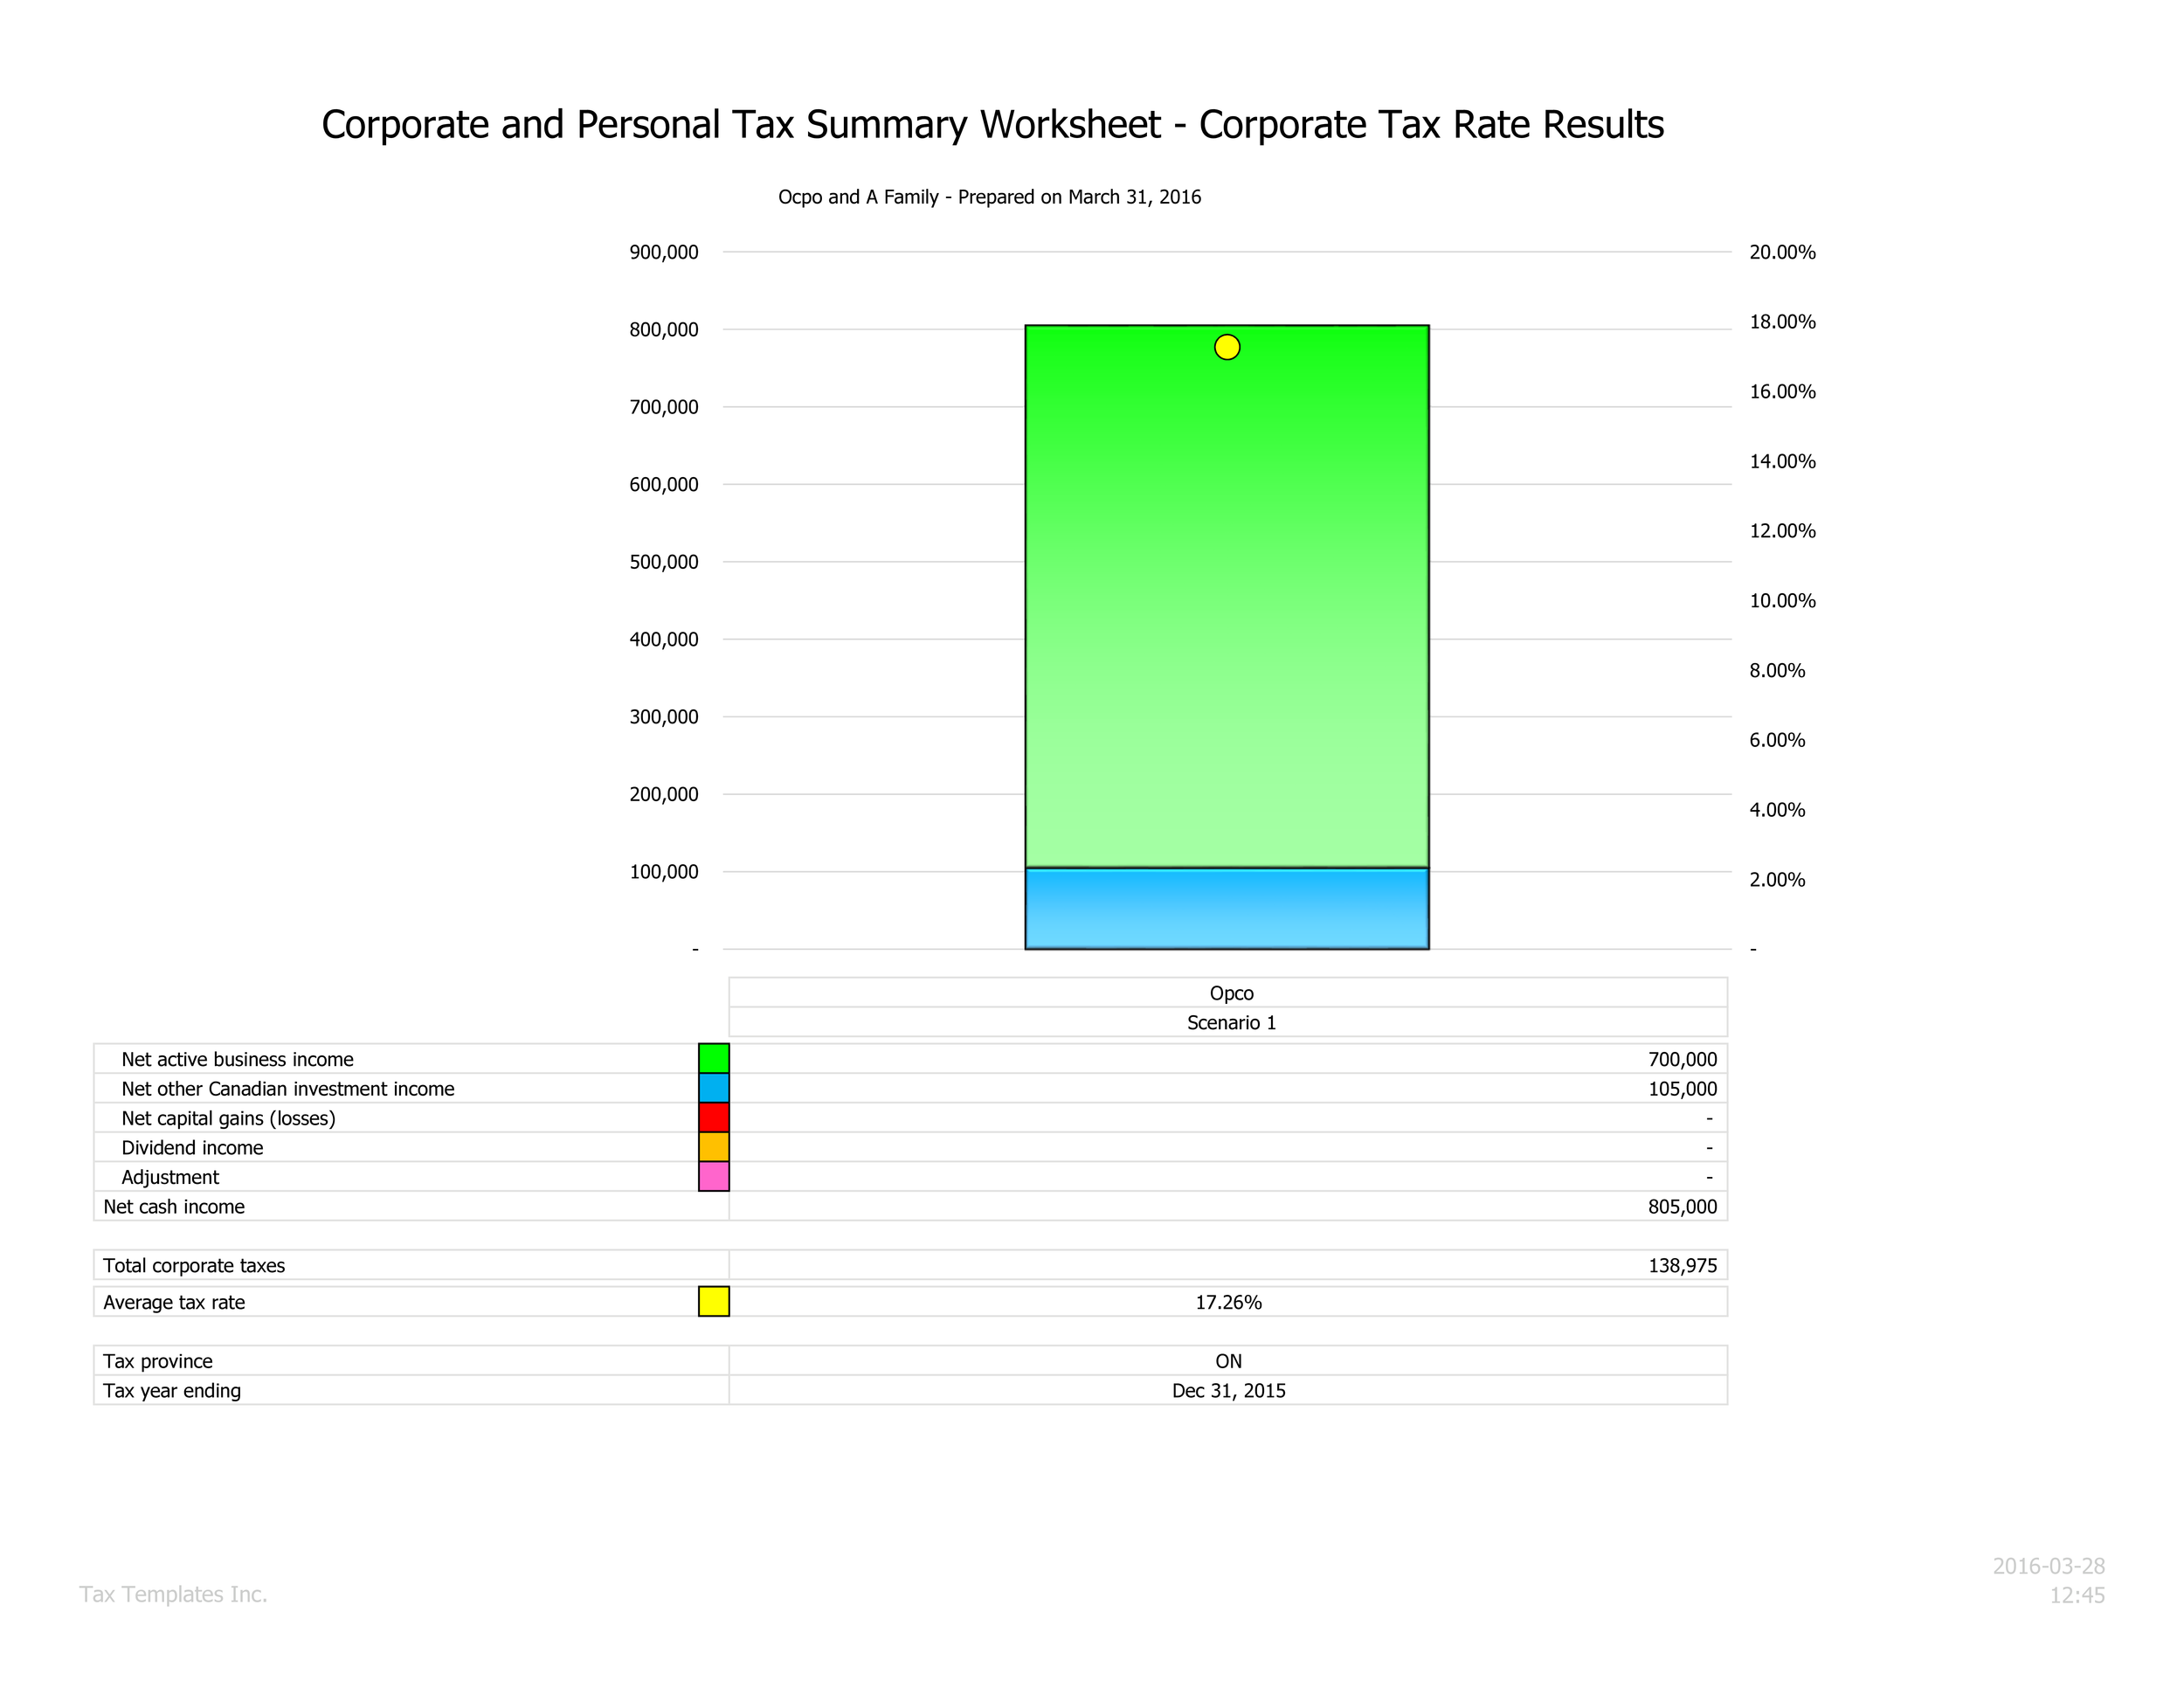 Corporate rate chart